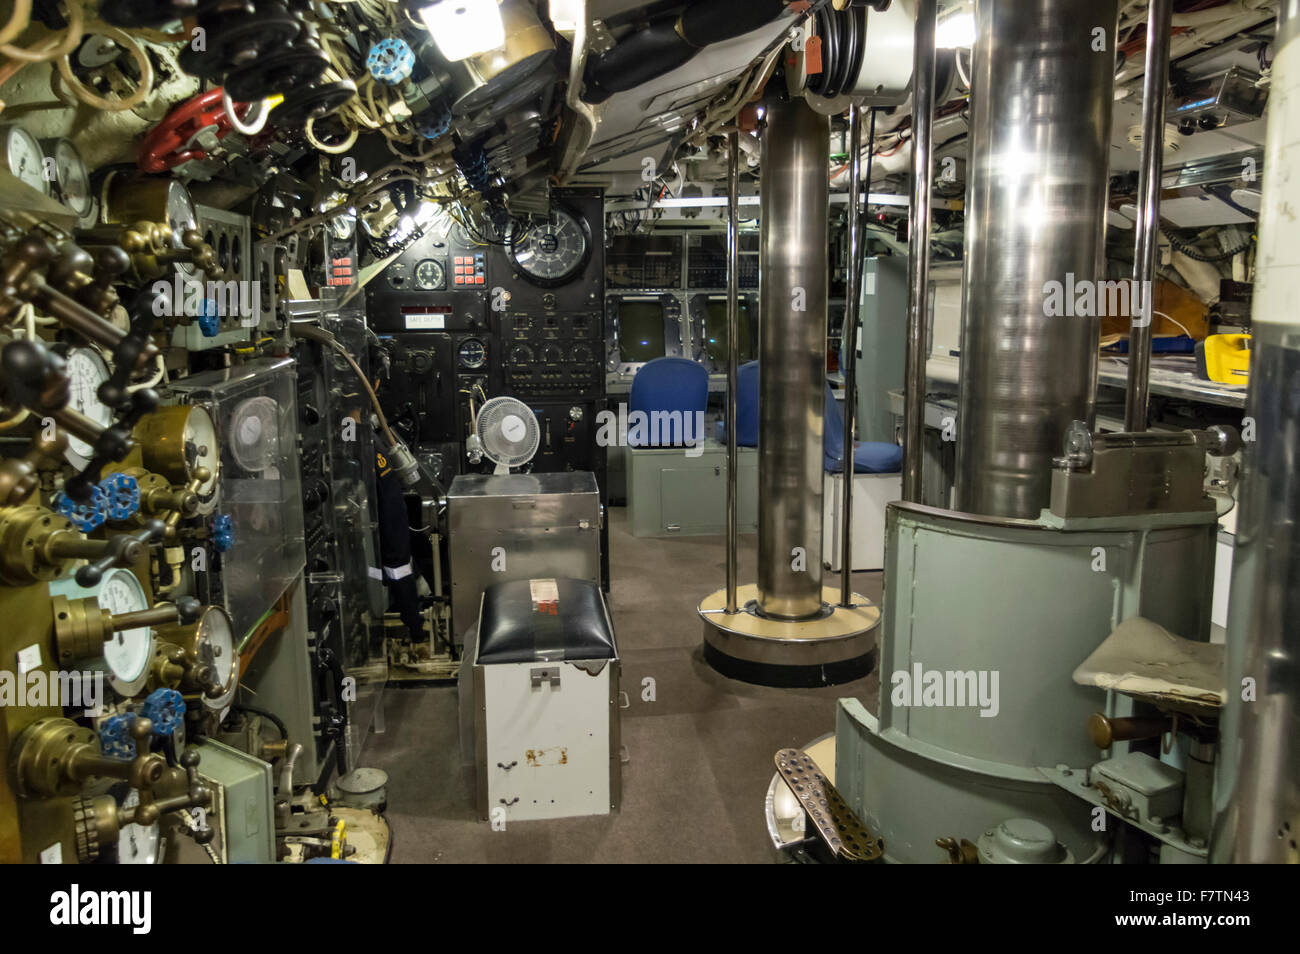 Interior of the Royal Australian Navy submarine HMAS Ovens, on display in the Western Australian Maritime Museum, - Stock Image